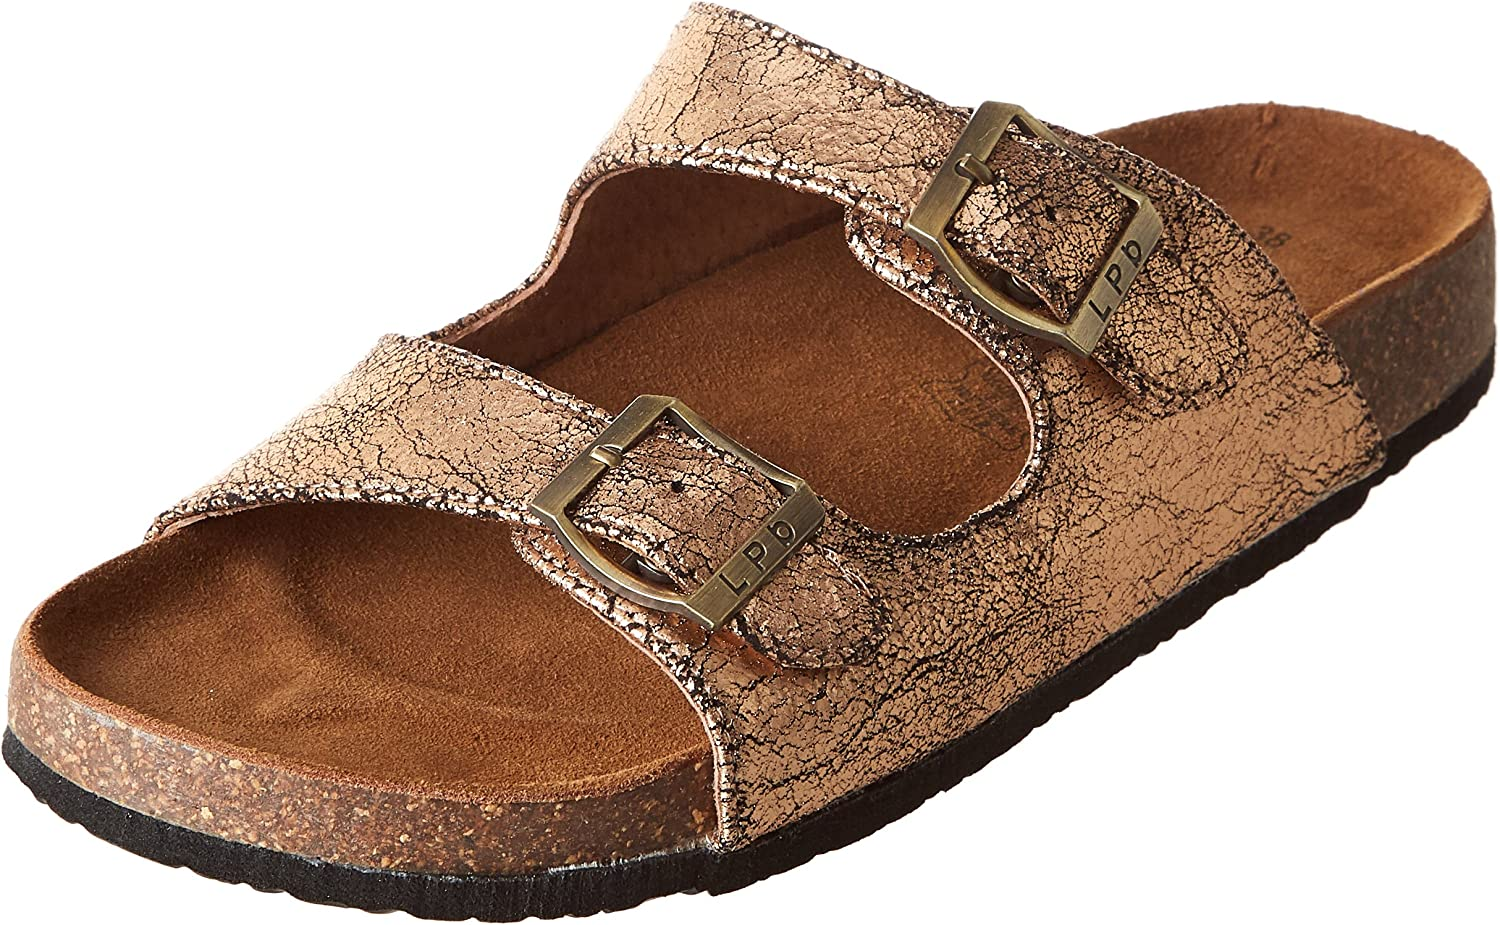 Les p'tites bombes 5-Orphée f18, Mules for Womens